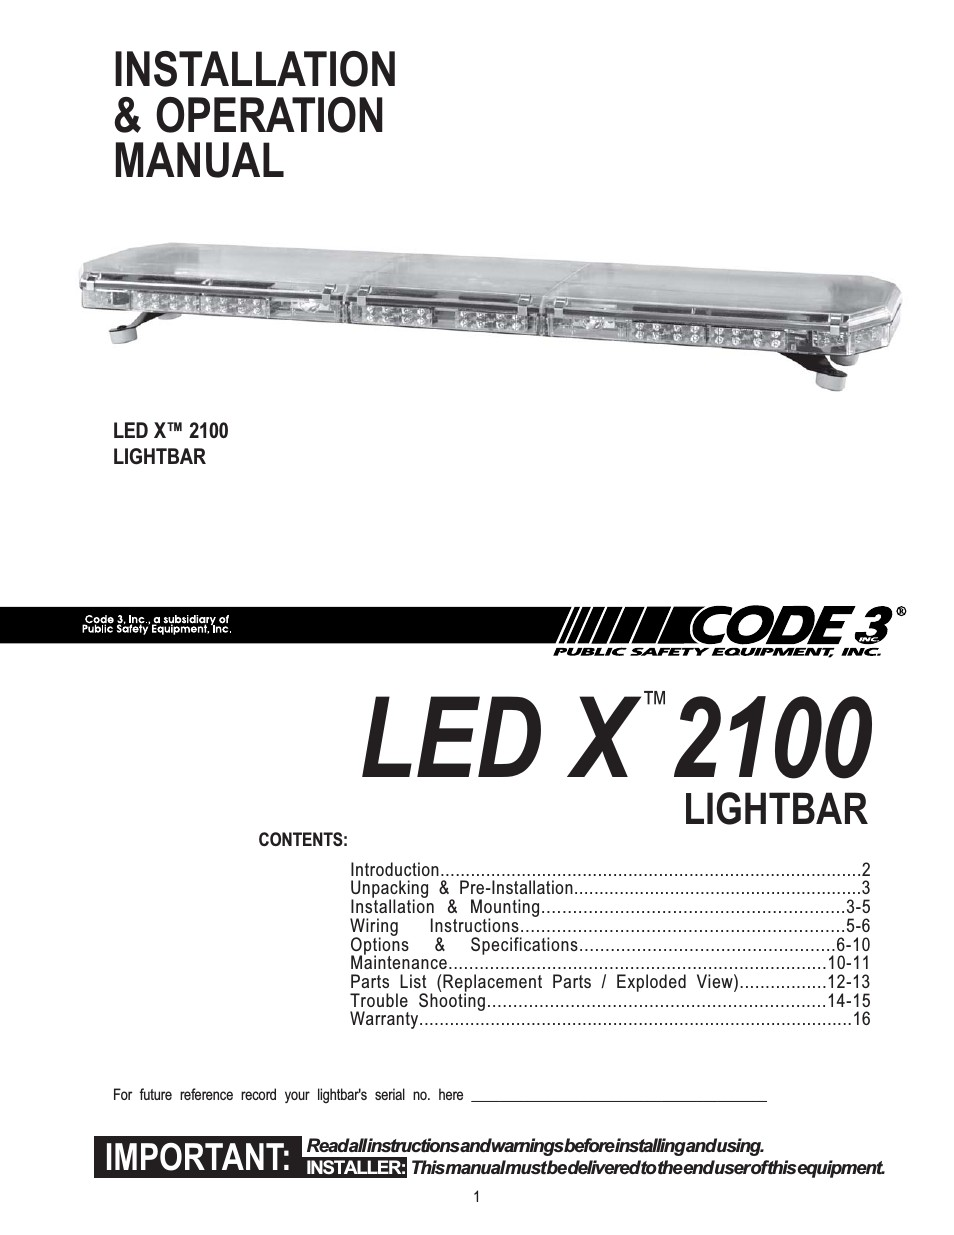 mx7000 wiring diagram opinions about wiring diagram u2022 rh voterid co  code 3 360 light bar wiring diagram code 3 led x 2100 lightbar wiring  diagram